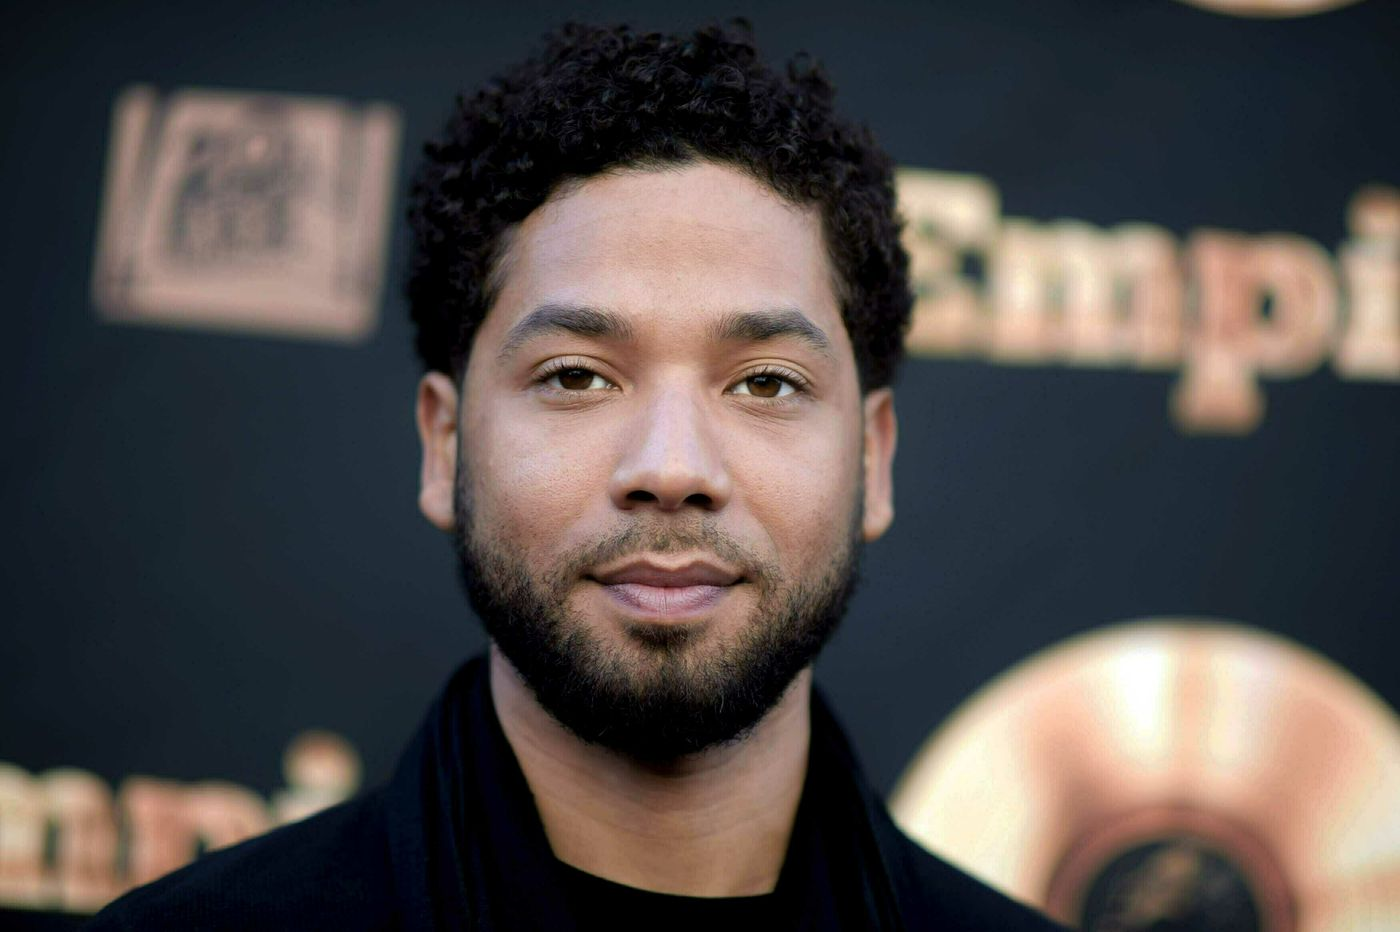 Jussie Smollett Charged: